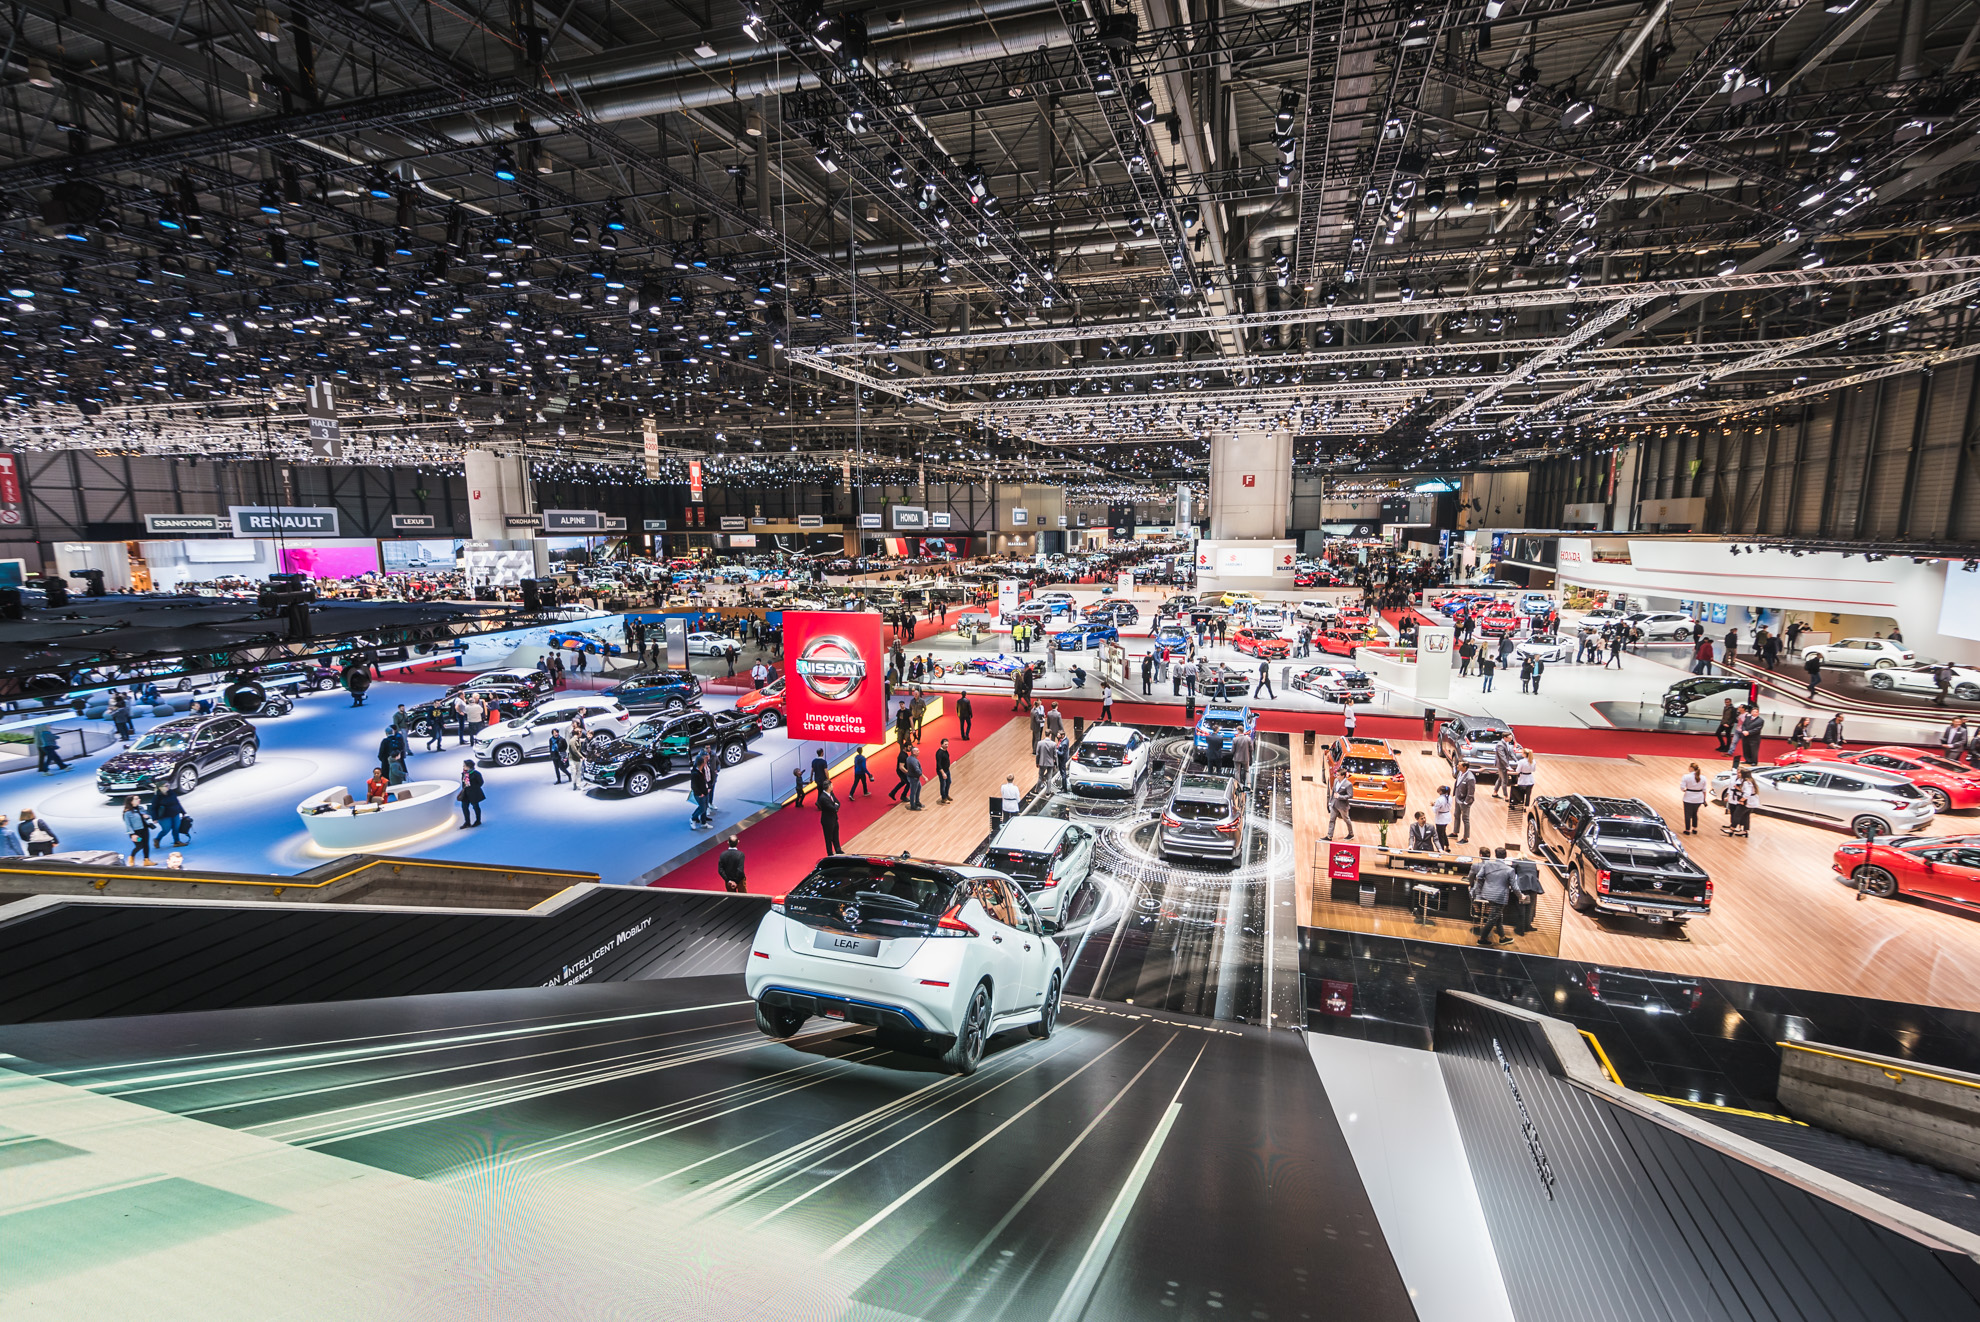 geneva-international-motor-show-igors-sinitsins-2